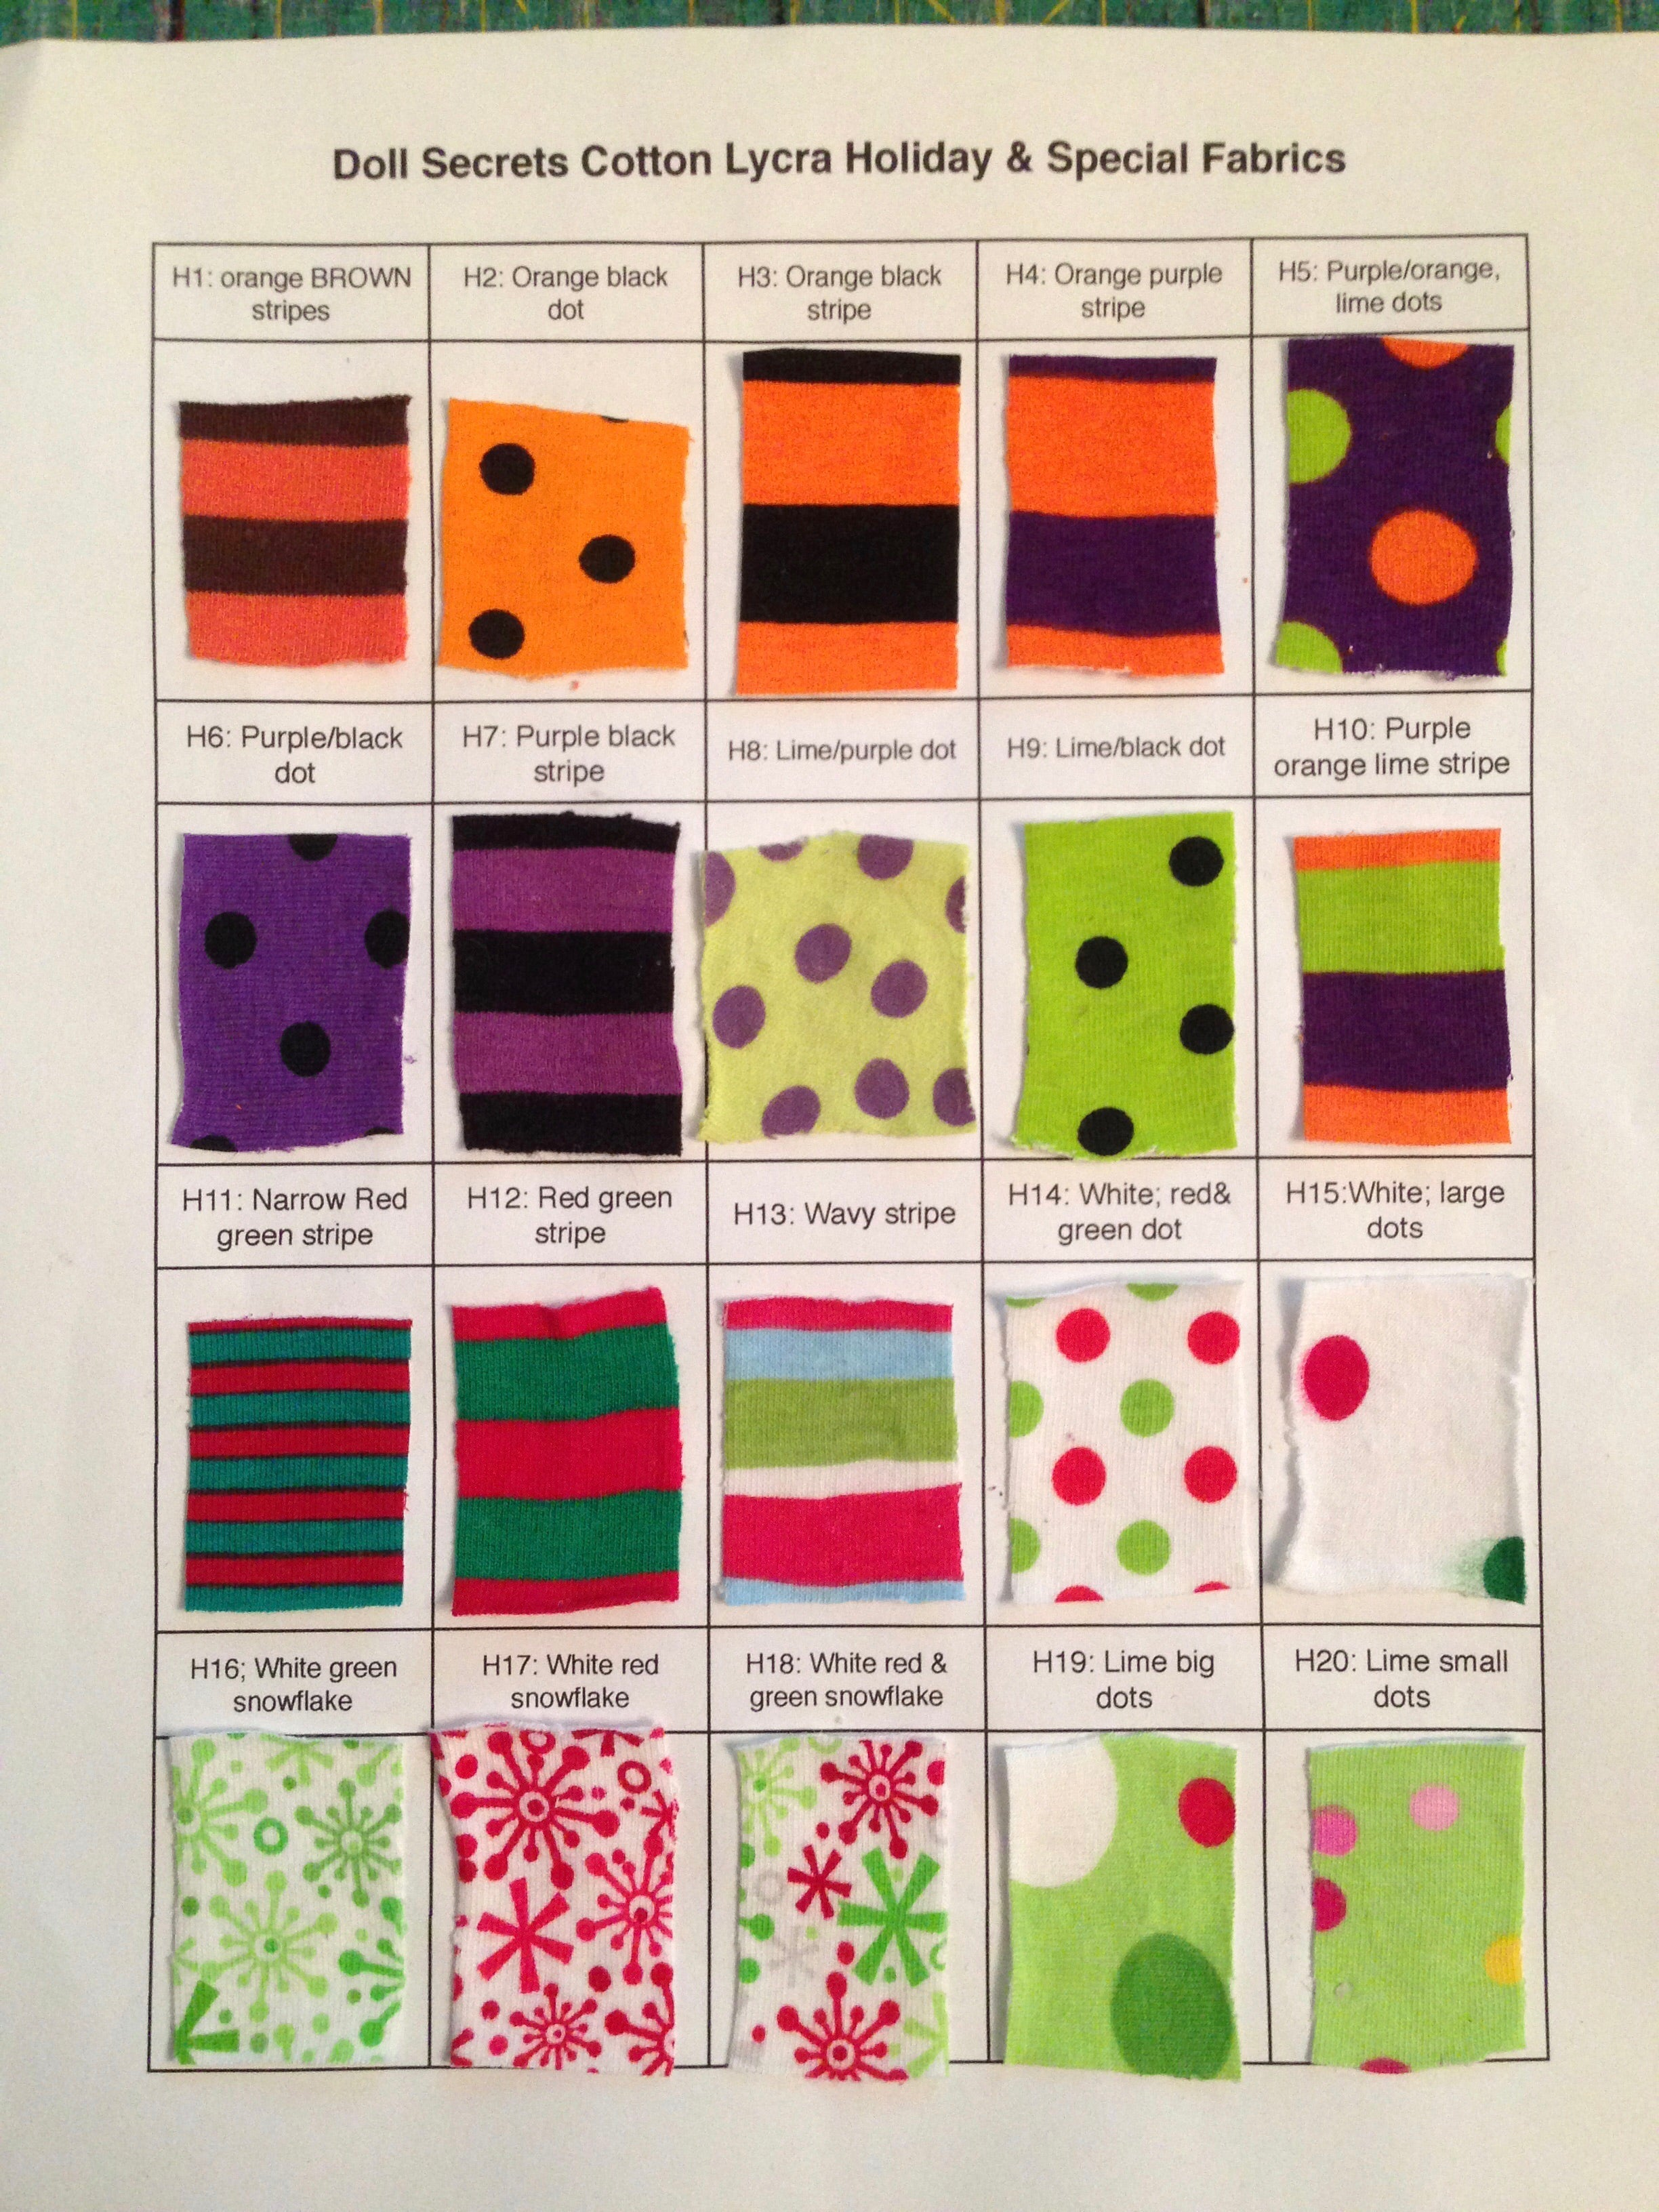 Cotton Lycra Holiday Fabric